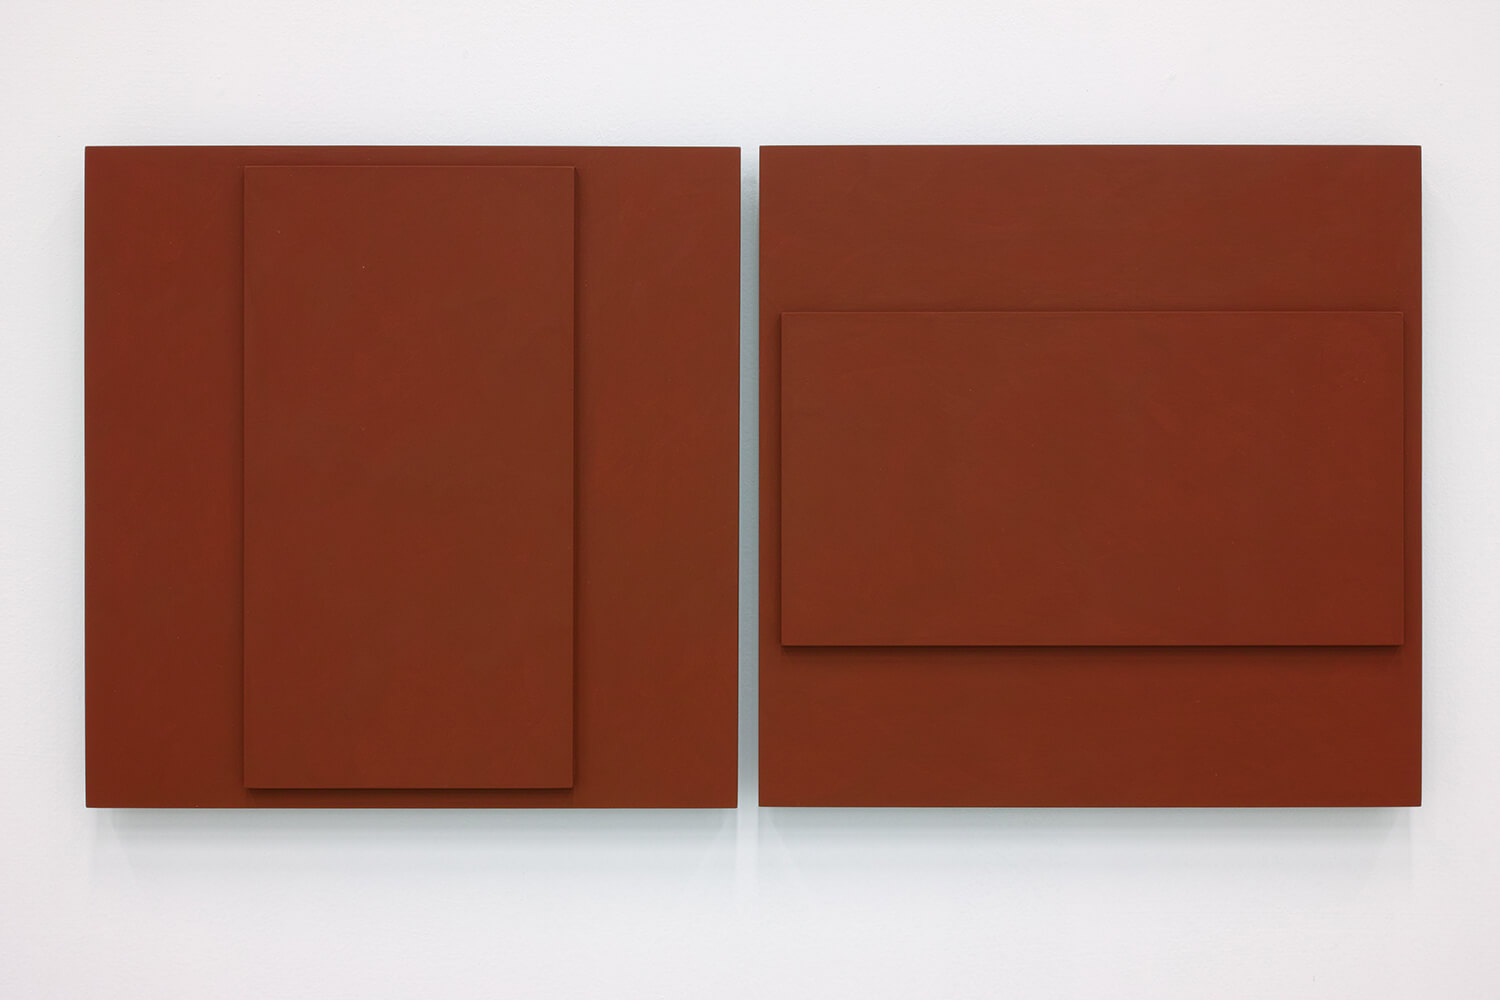 TS1813<br>Colour Gesso on Panel, 41x41cm each, 2018